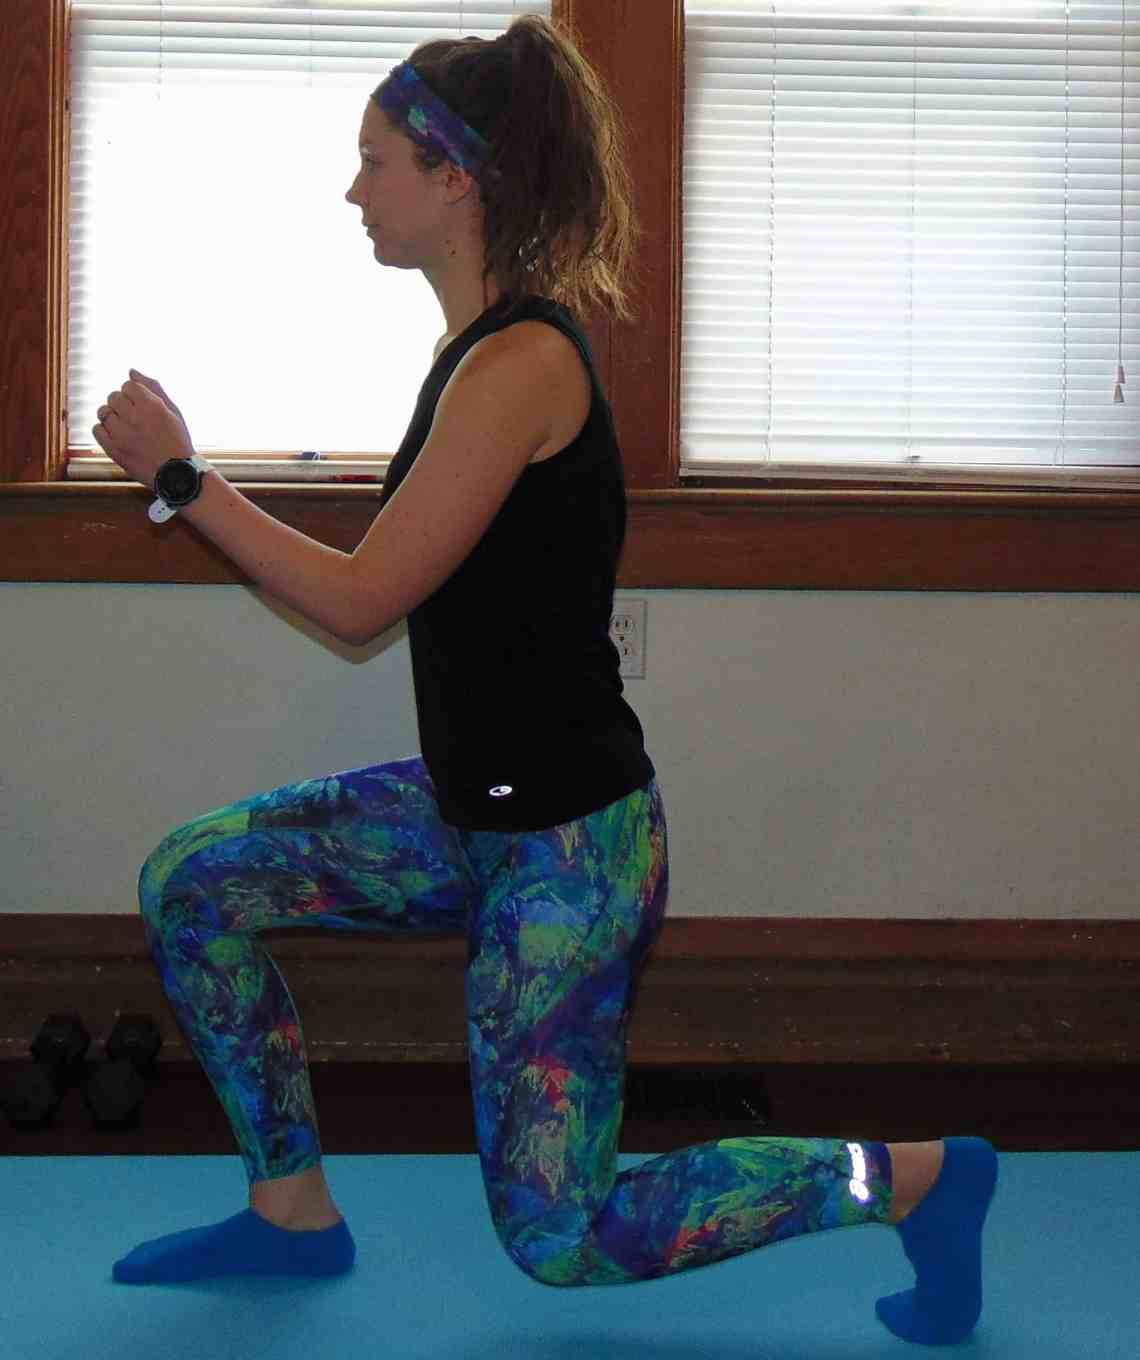 This 20 minute bodyweight leg workout for runners requires no supplies and can be done in your living room. Slim your legs and build muscle for an ideal toning workout. For the ultimate strength gain and leg burn, try these moves!